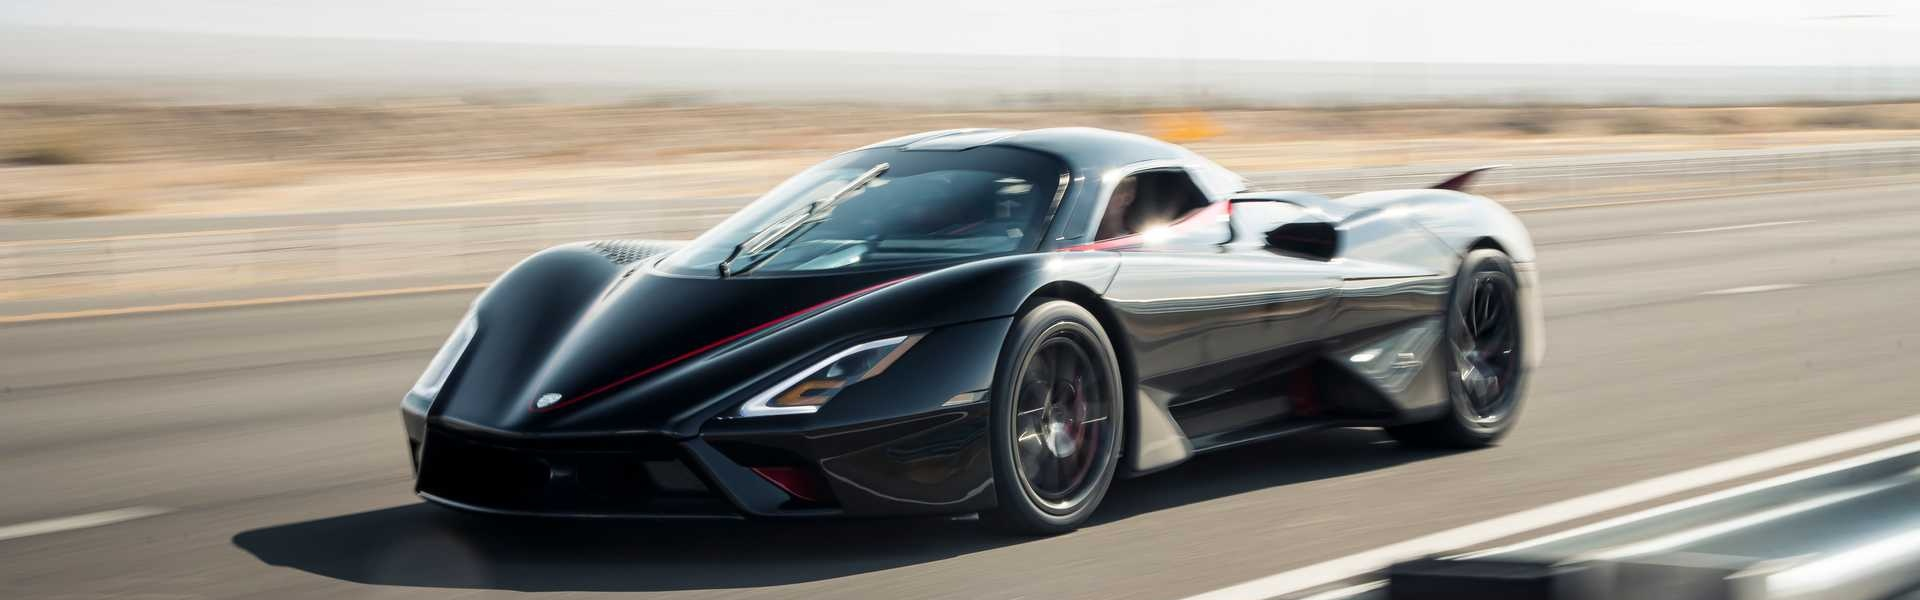 ssc-tuatara-becomes-the-fastest-production-car (2).jpg